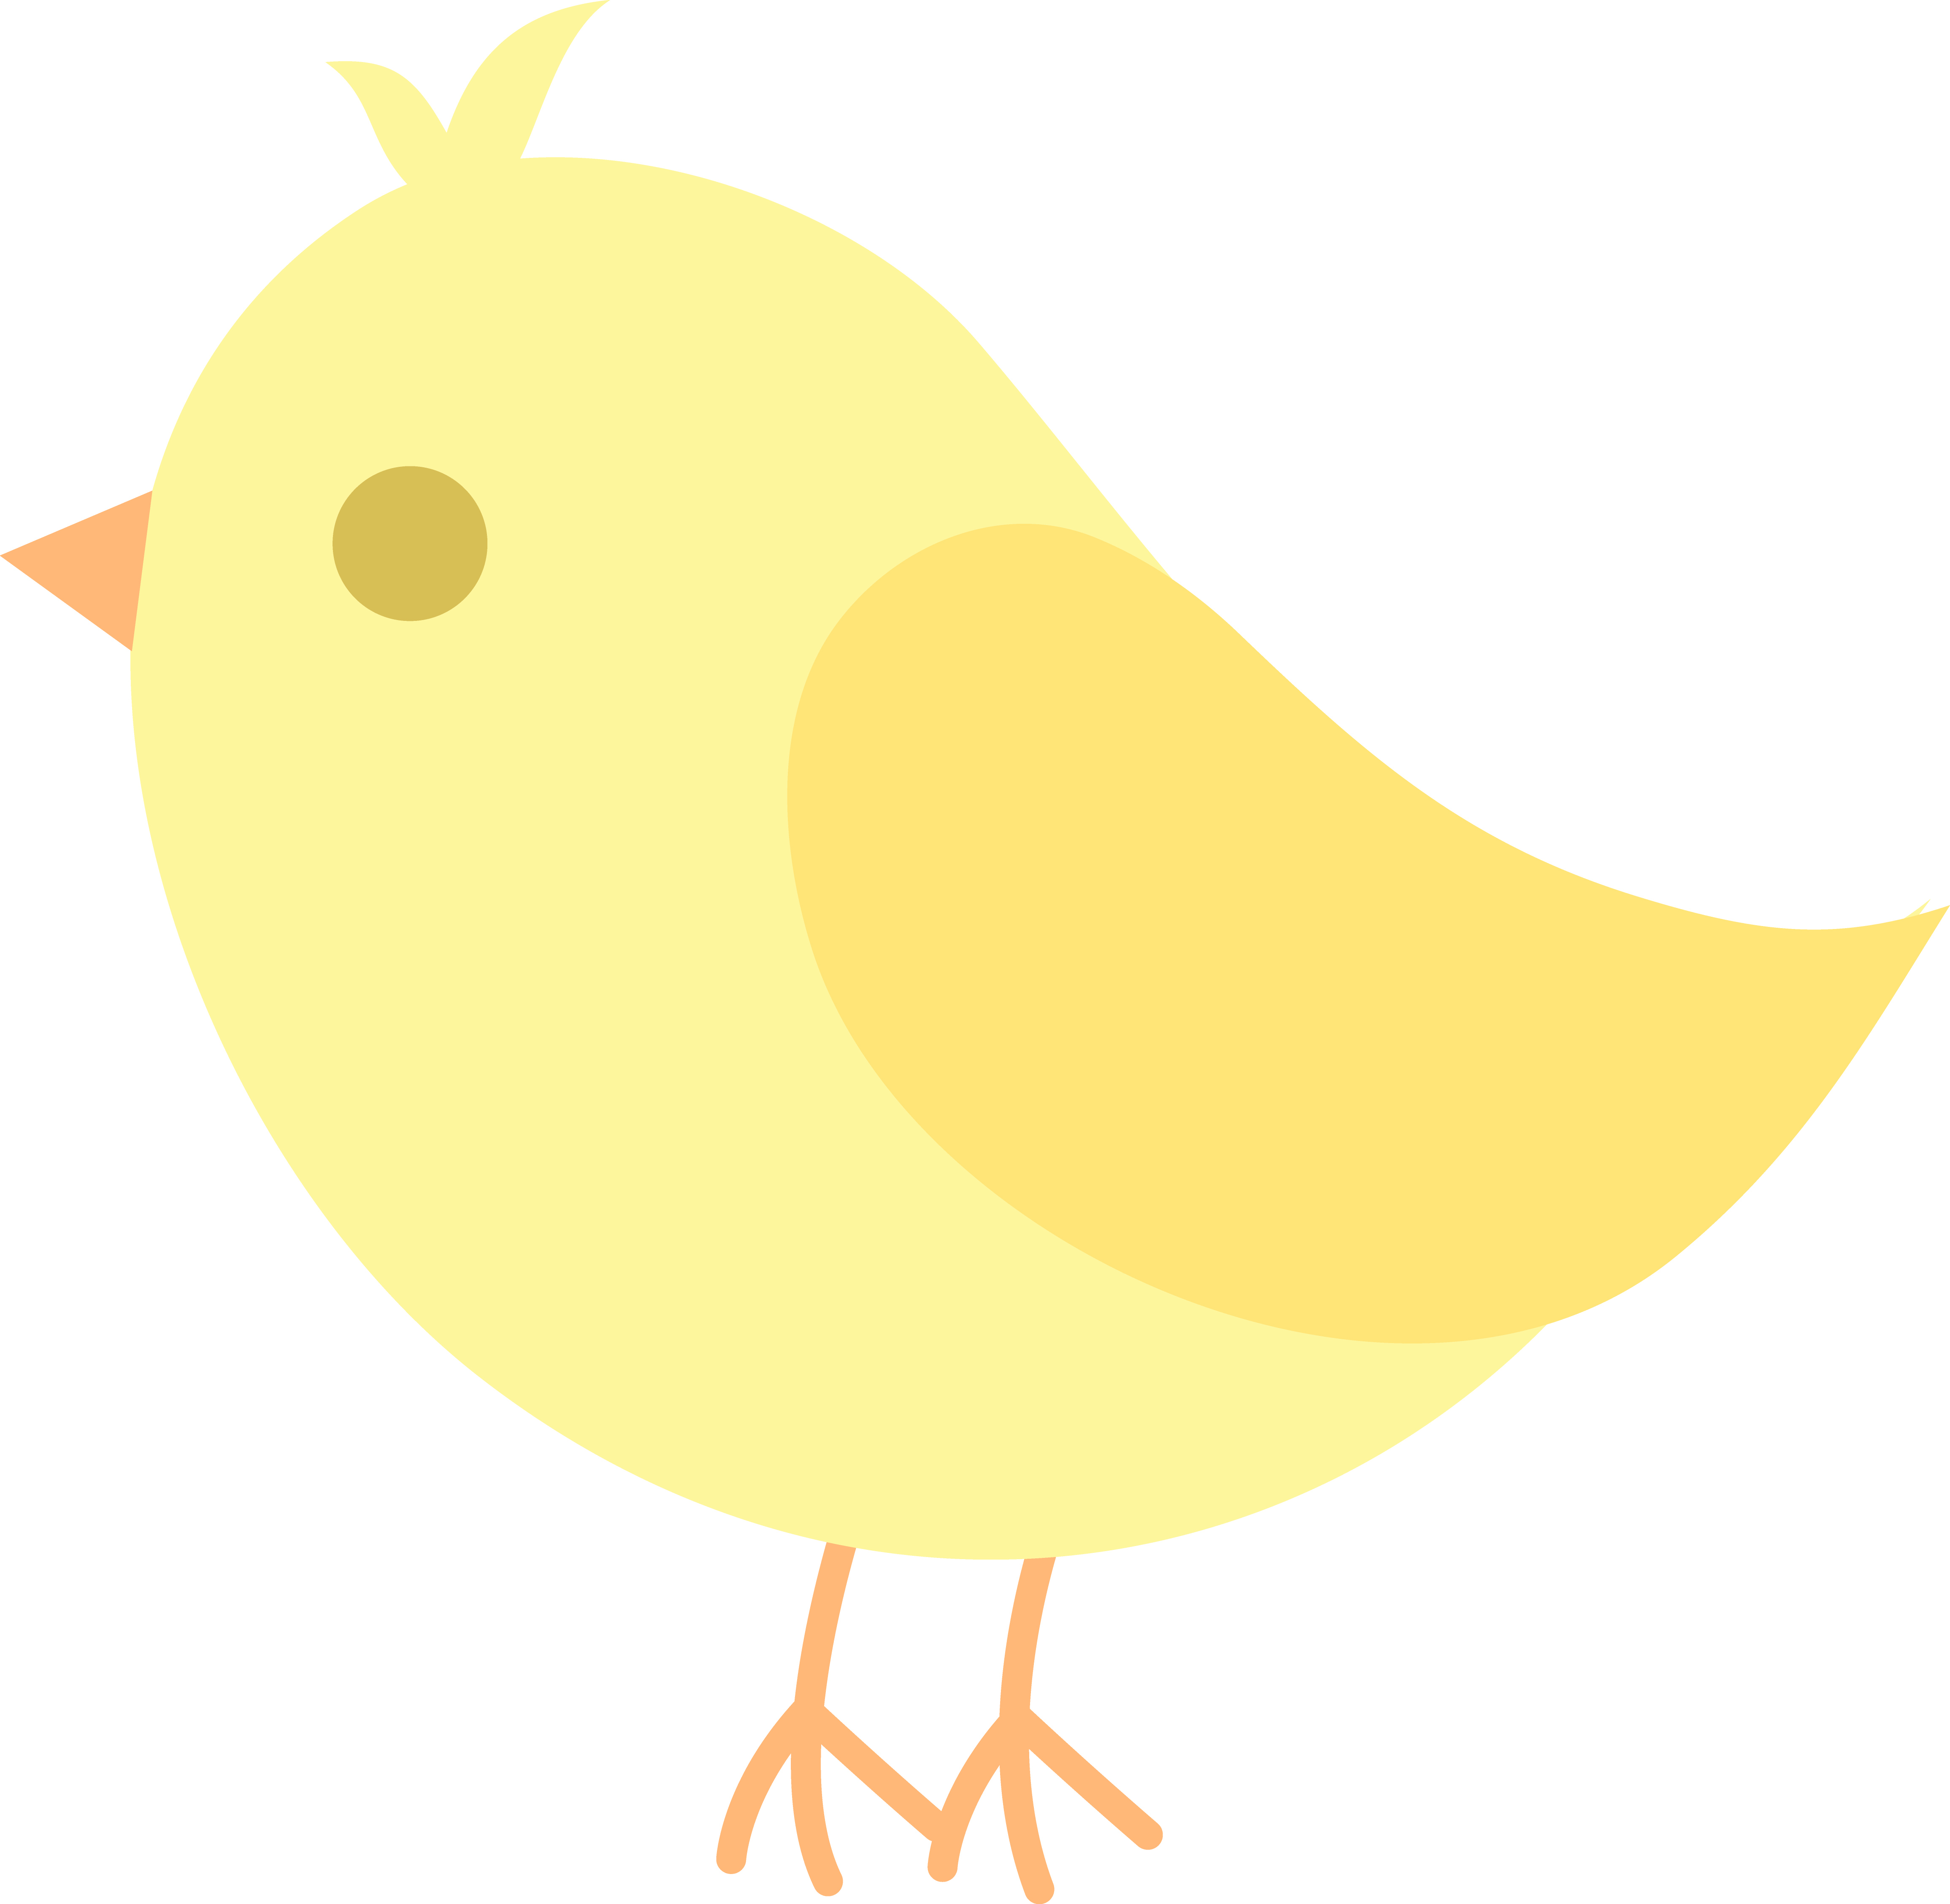 Yellow Bird Clipart at GetDrawings.com | Free for personal use ...